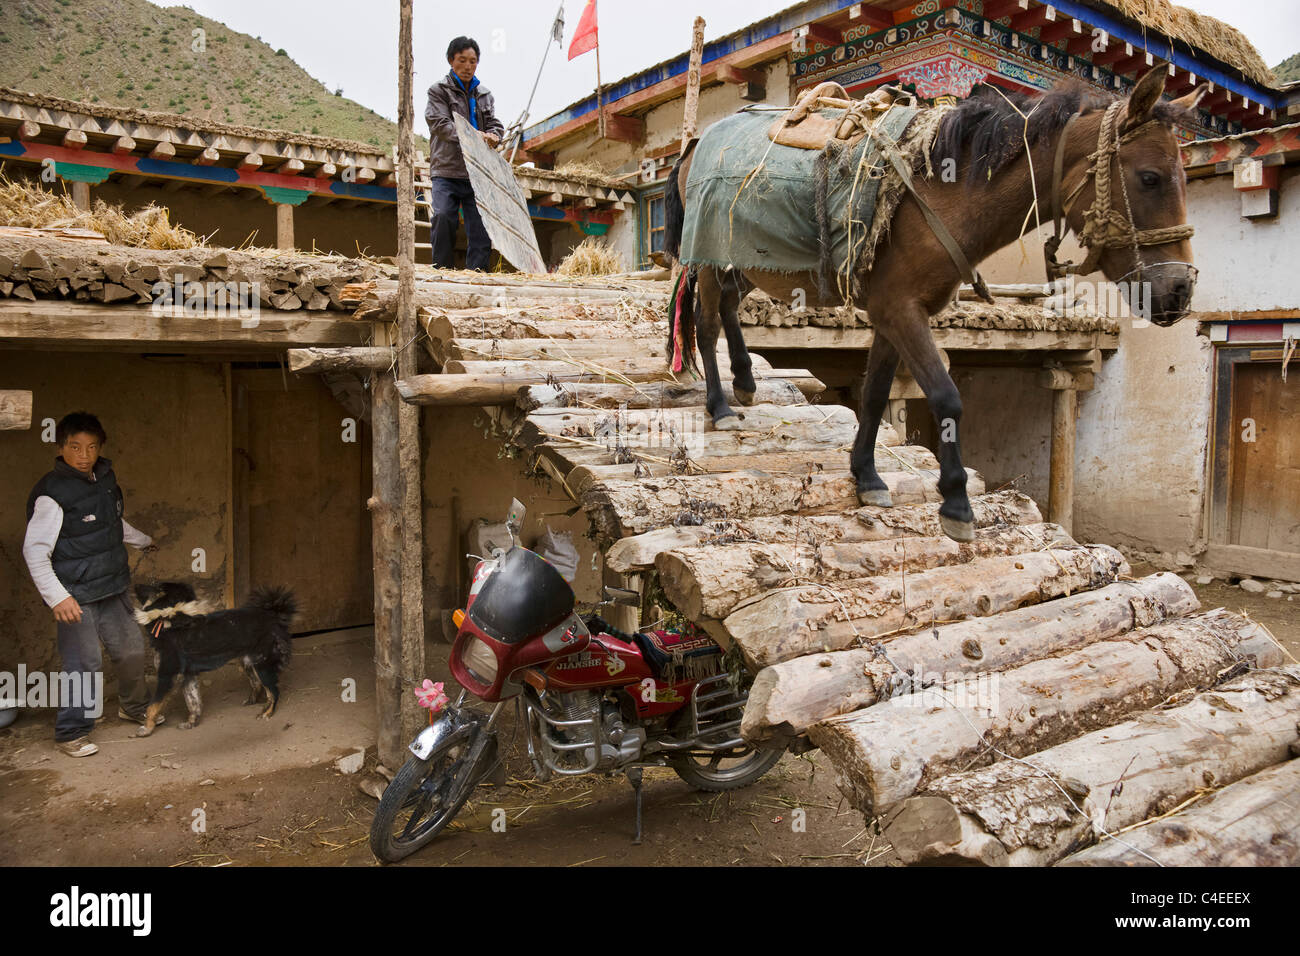 Horses carrying hay back from fields, Lie Da village, Yu Qu valley (a tributary of the Brahmaputra), Tibet. China - Stock Image